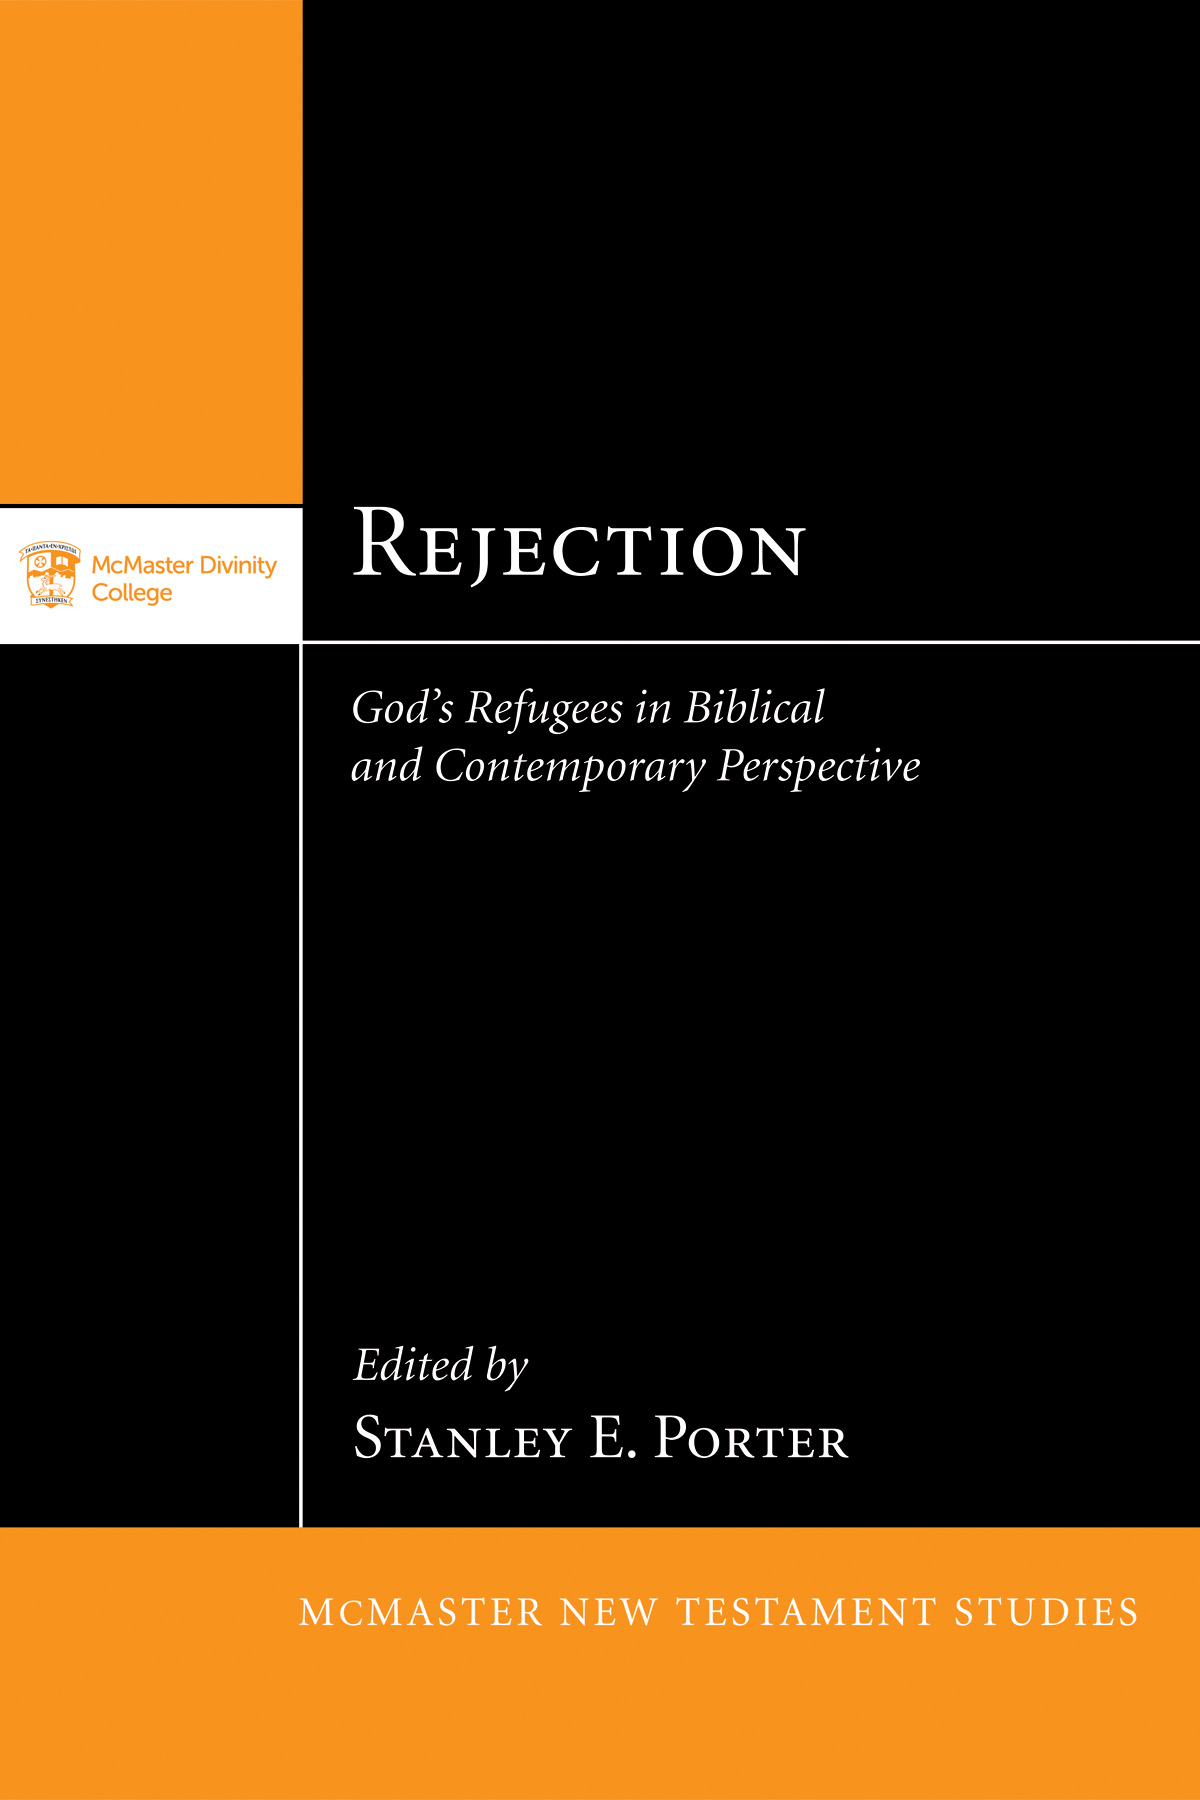 Rejection: God's Refugees in Biblical and Contemporary Perspective